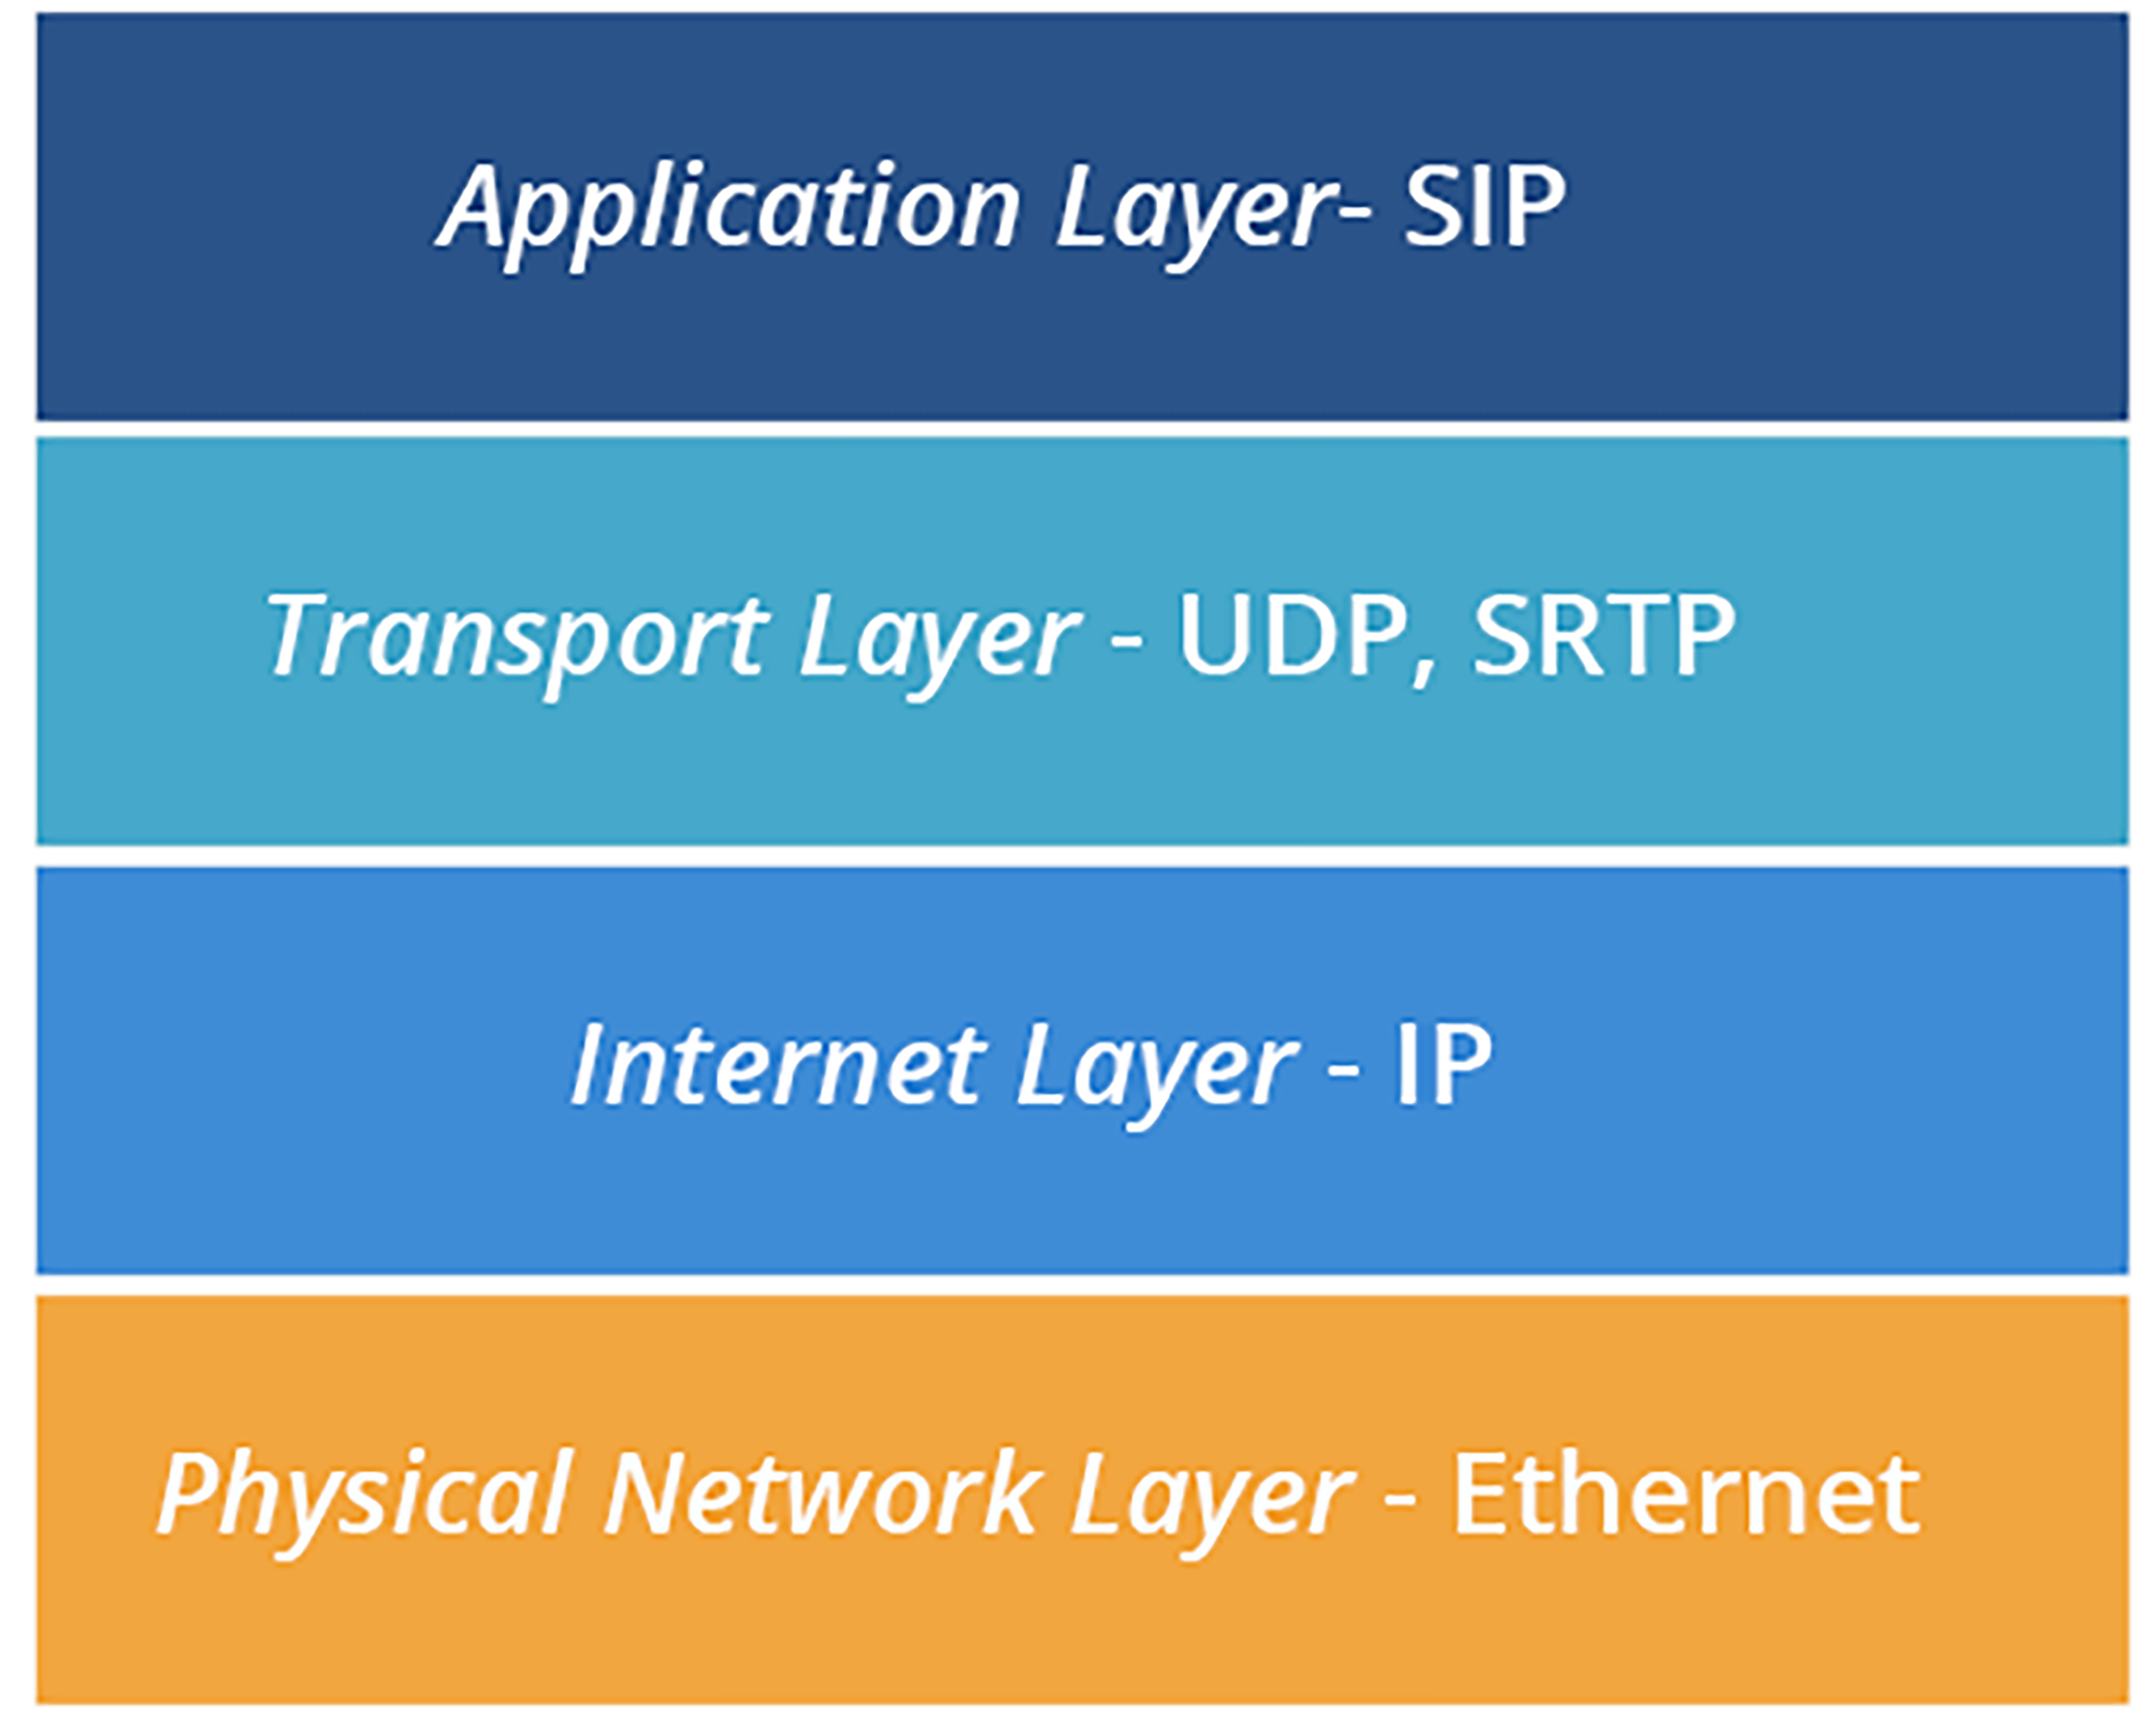 VoIP Communication Layers Diagram, Application Layer, Transport Layer, Internet Layer, and Physical Network Layer